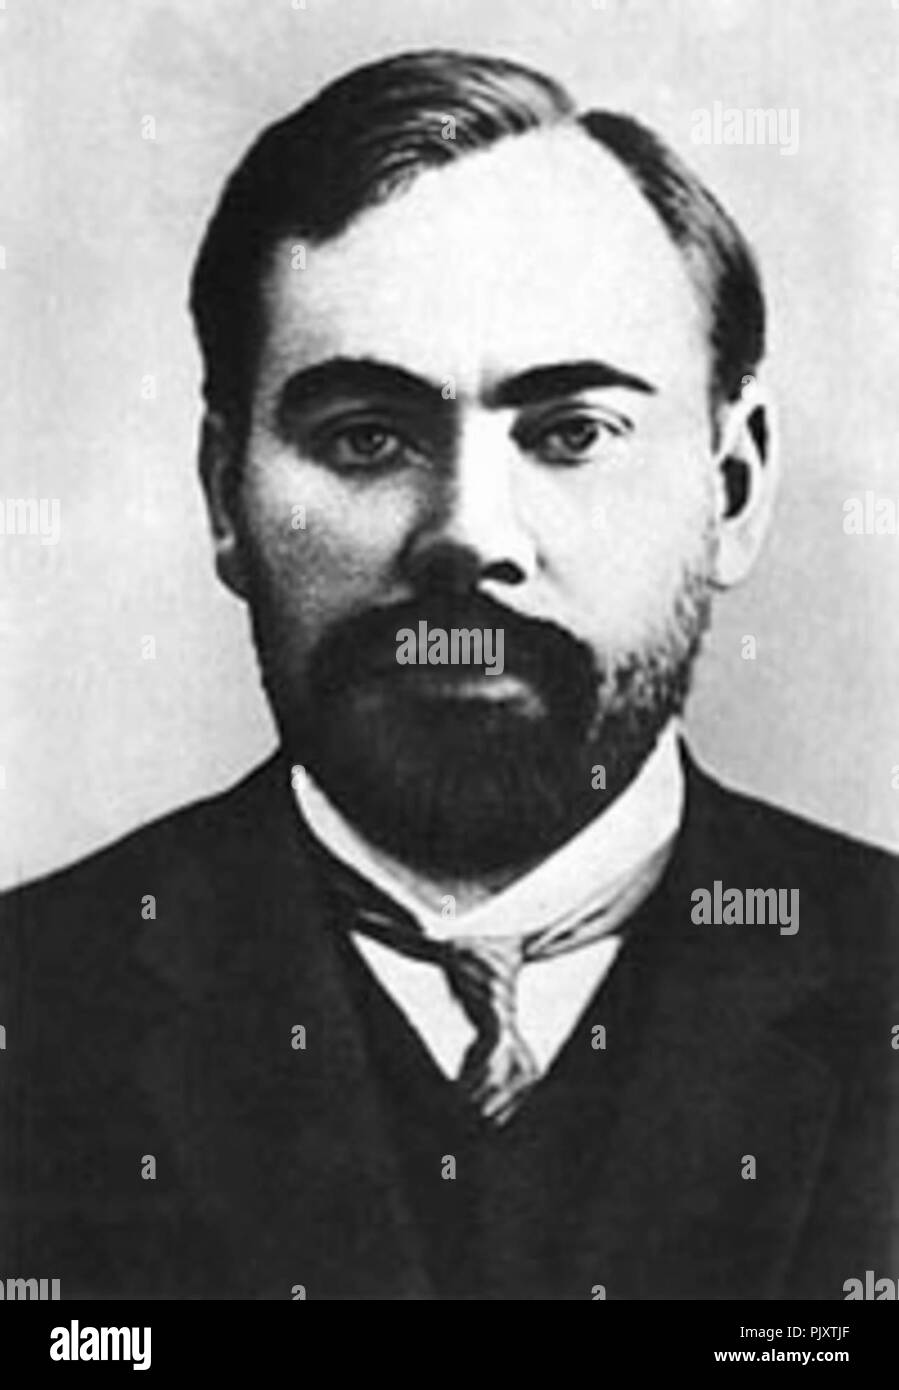 Bolshevik philosopher and writer Alexander Bogdanov (1873-1928), with whom Pokrovsky was closely associated during his years of European exile. - Stock Image